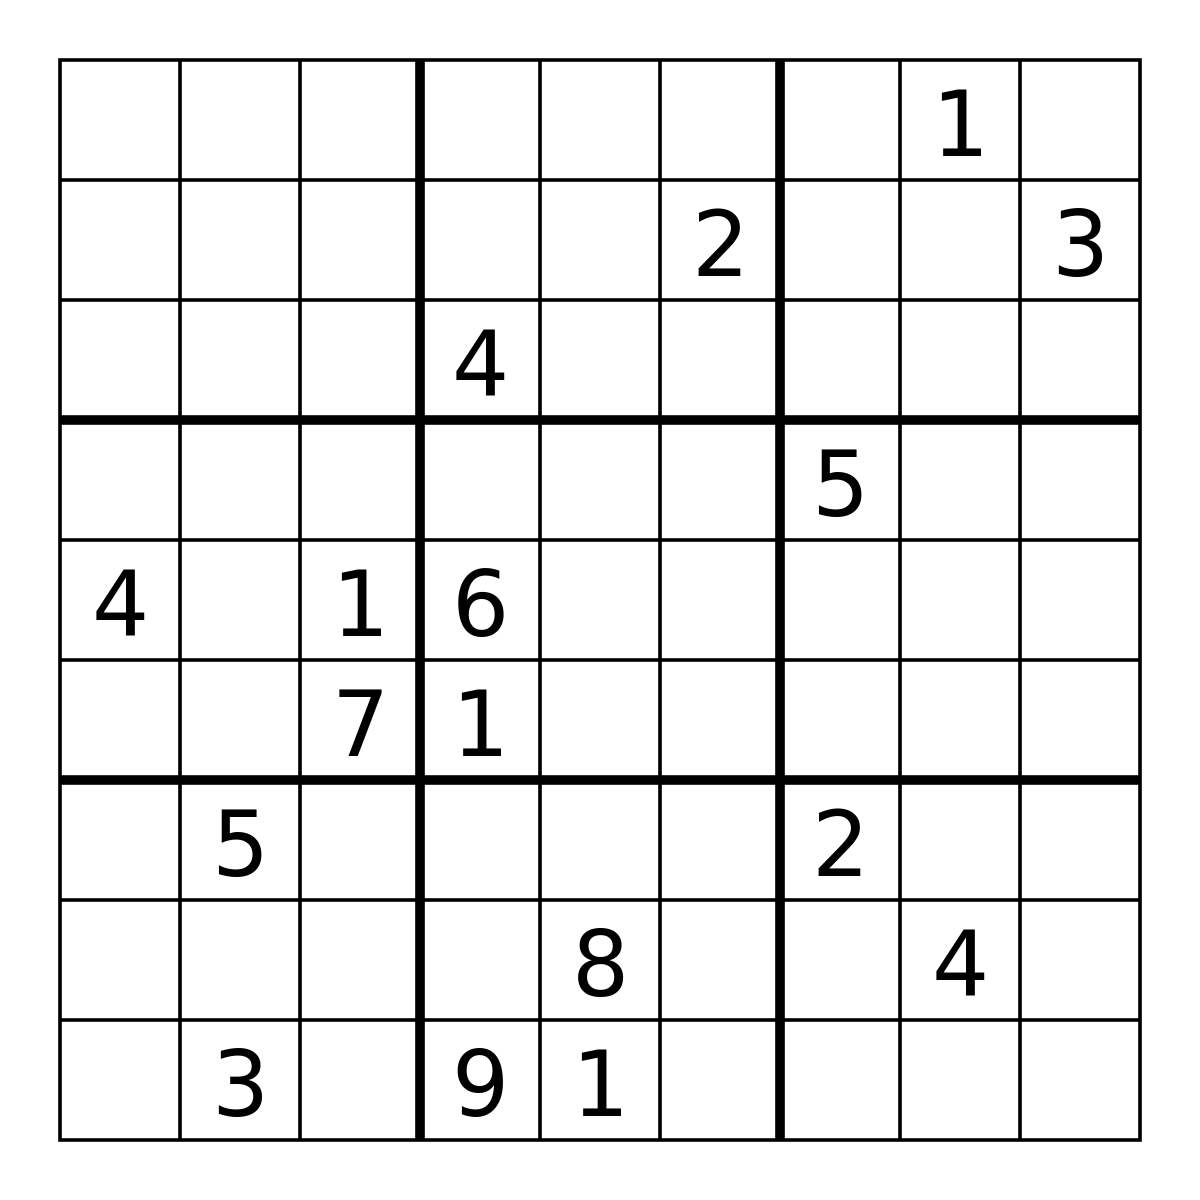 Is A Legit Sudoku Puzzle Supposed To Be Symmetrical